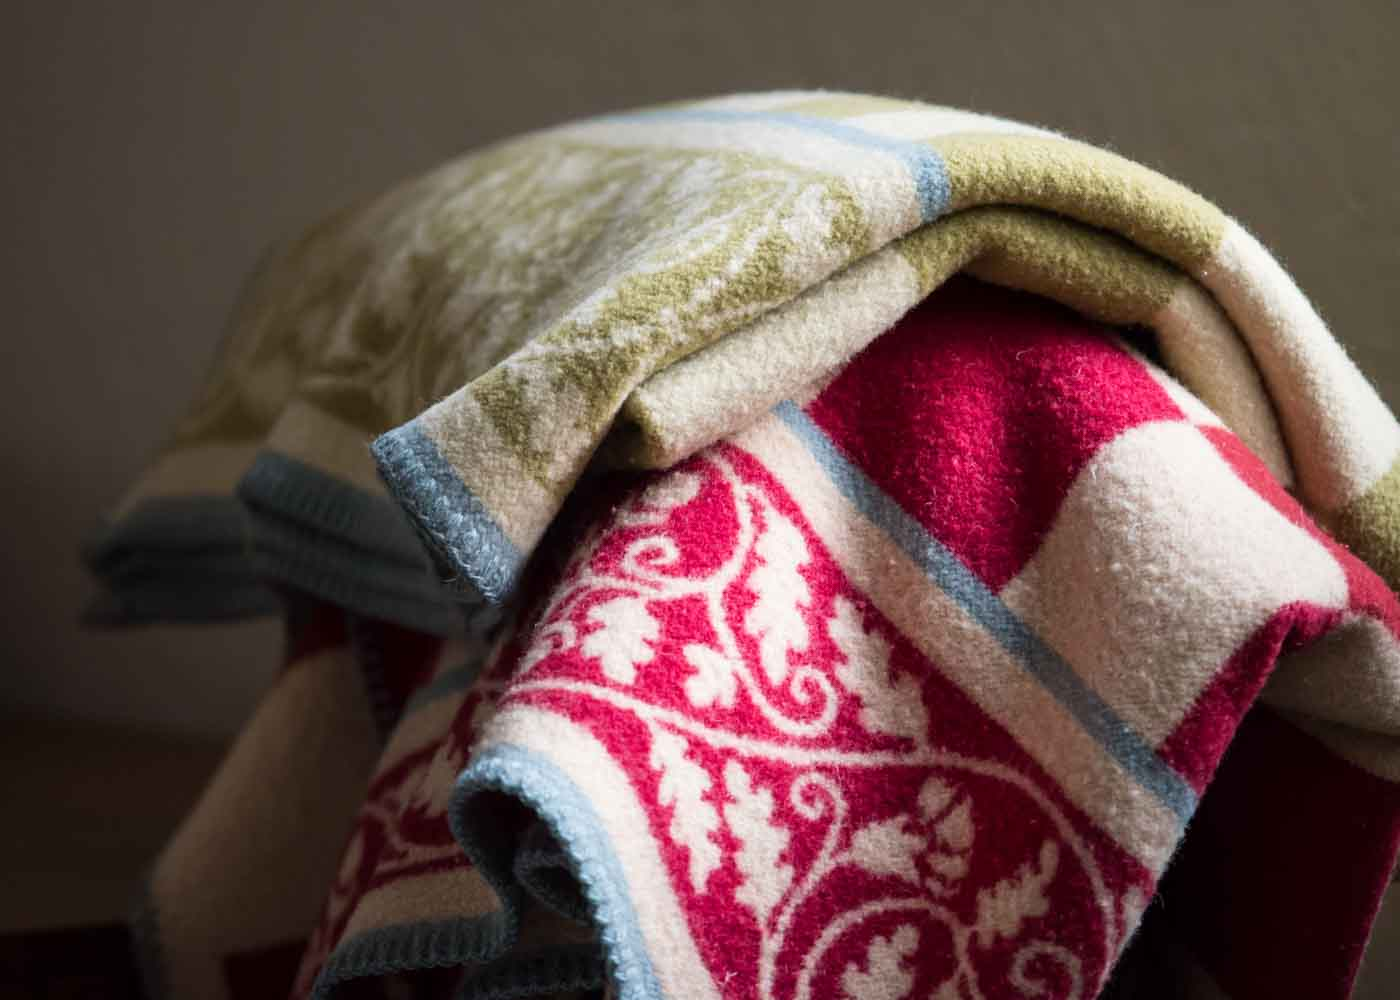 Oleana wool blankets are an eminently cozy, long-lasting gift.